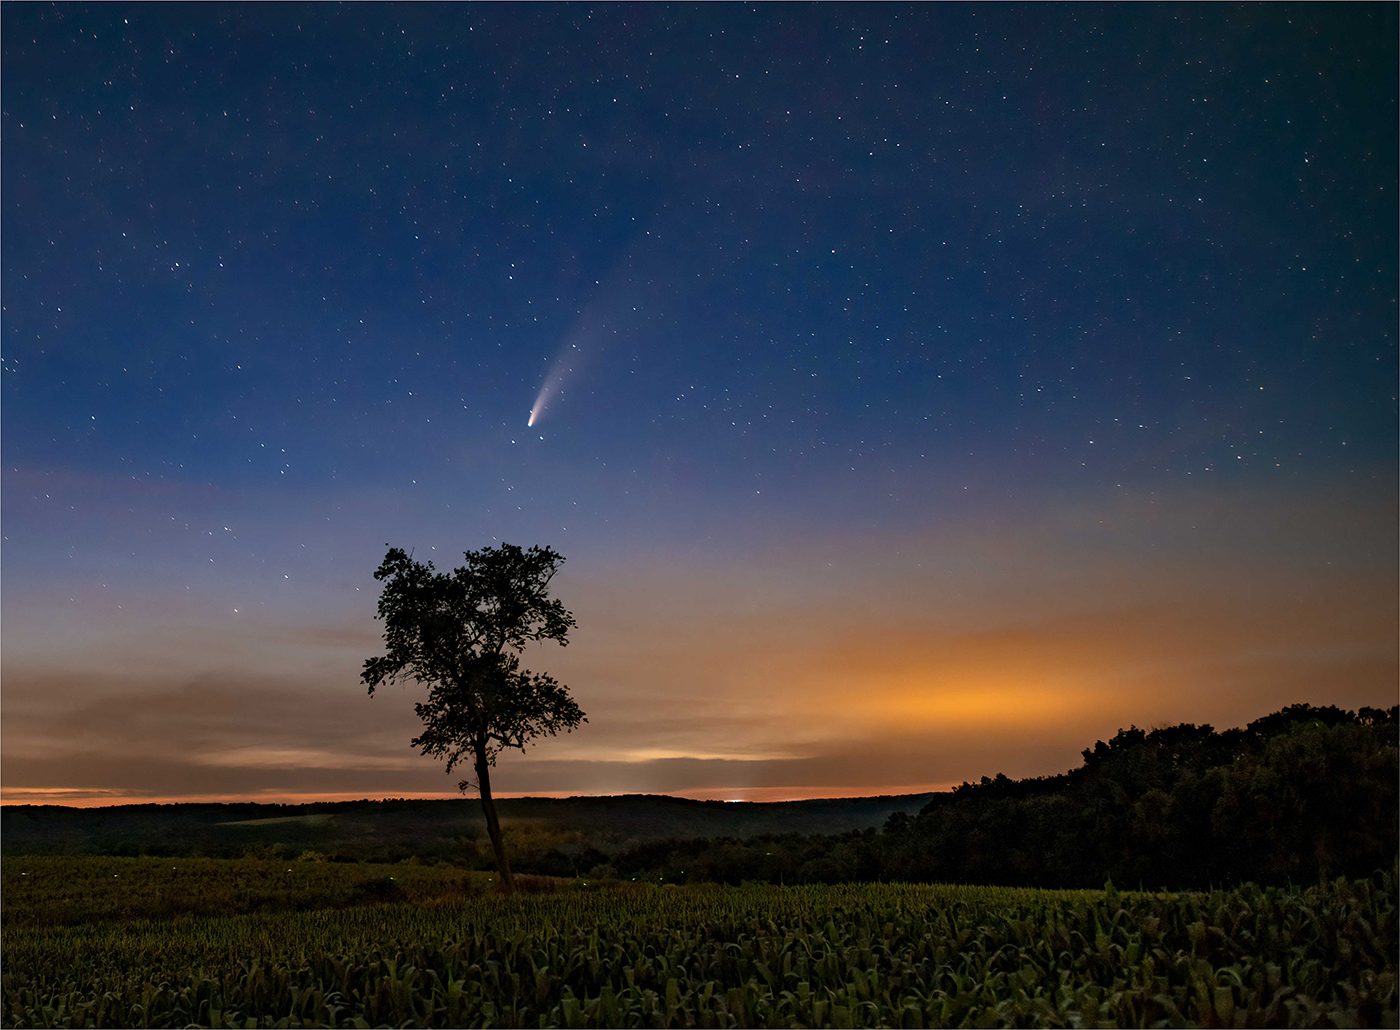 Flight-Of-The-Comet-And-The-Firefly